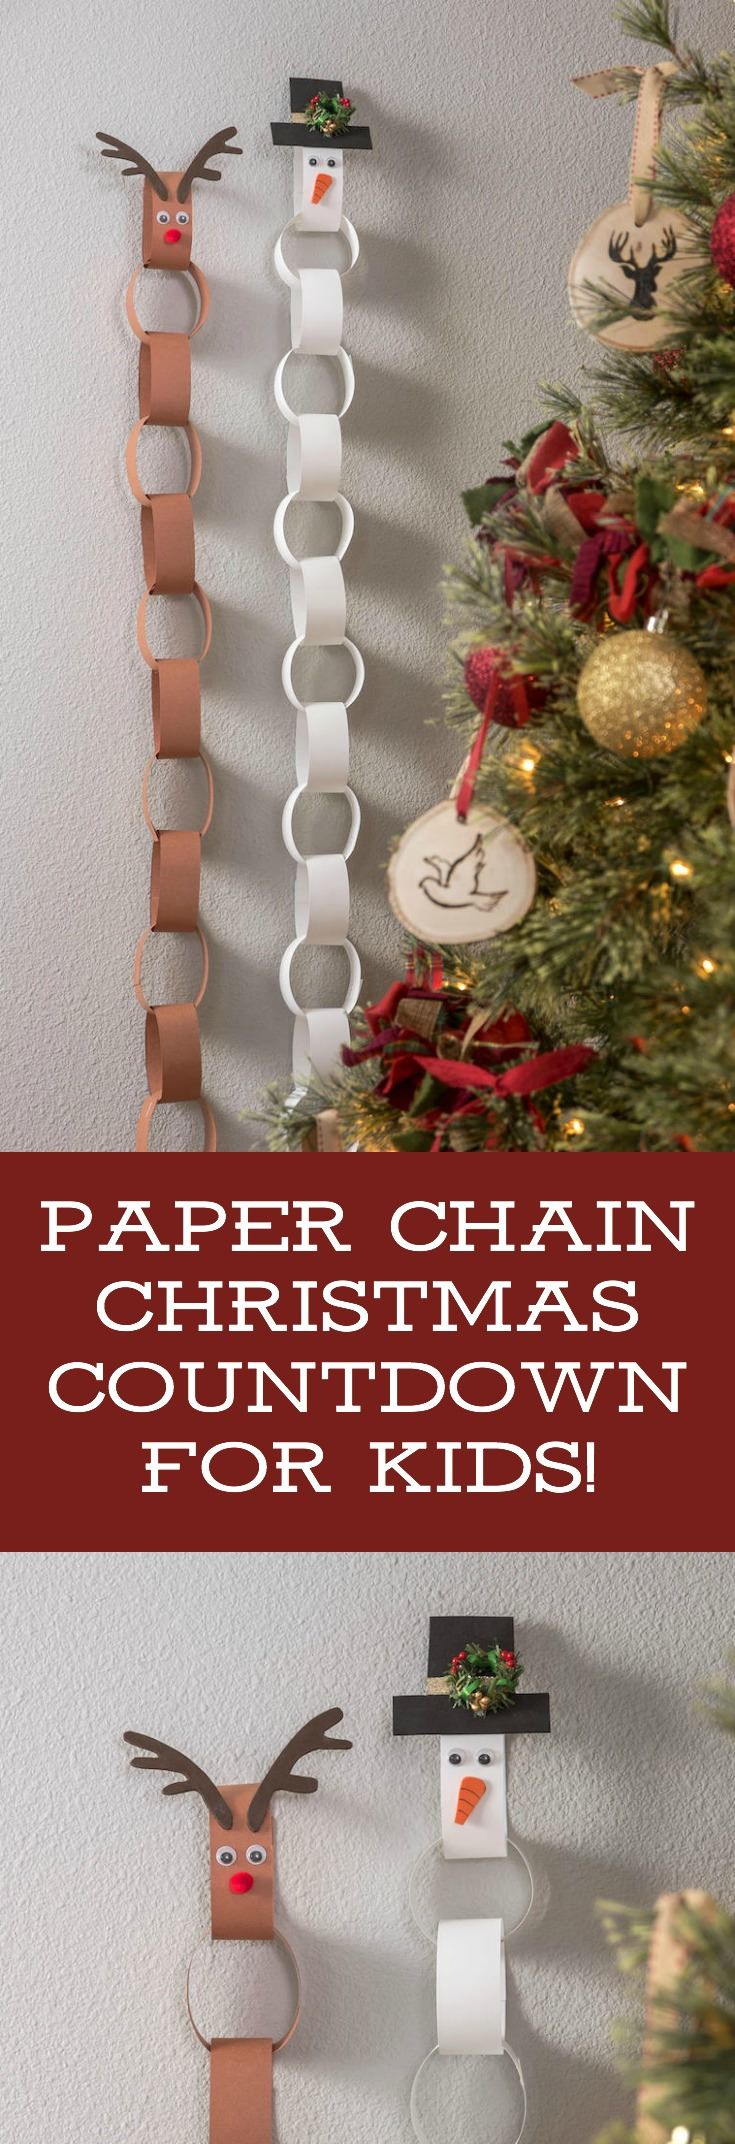 Children can assemble their own easy DIY holiday countdown using this kids advent calendar tutorial! Made from construction paper and candy free. One of those Christmas activities parents and children can do together! via @modpodgerocks